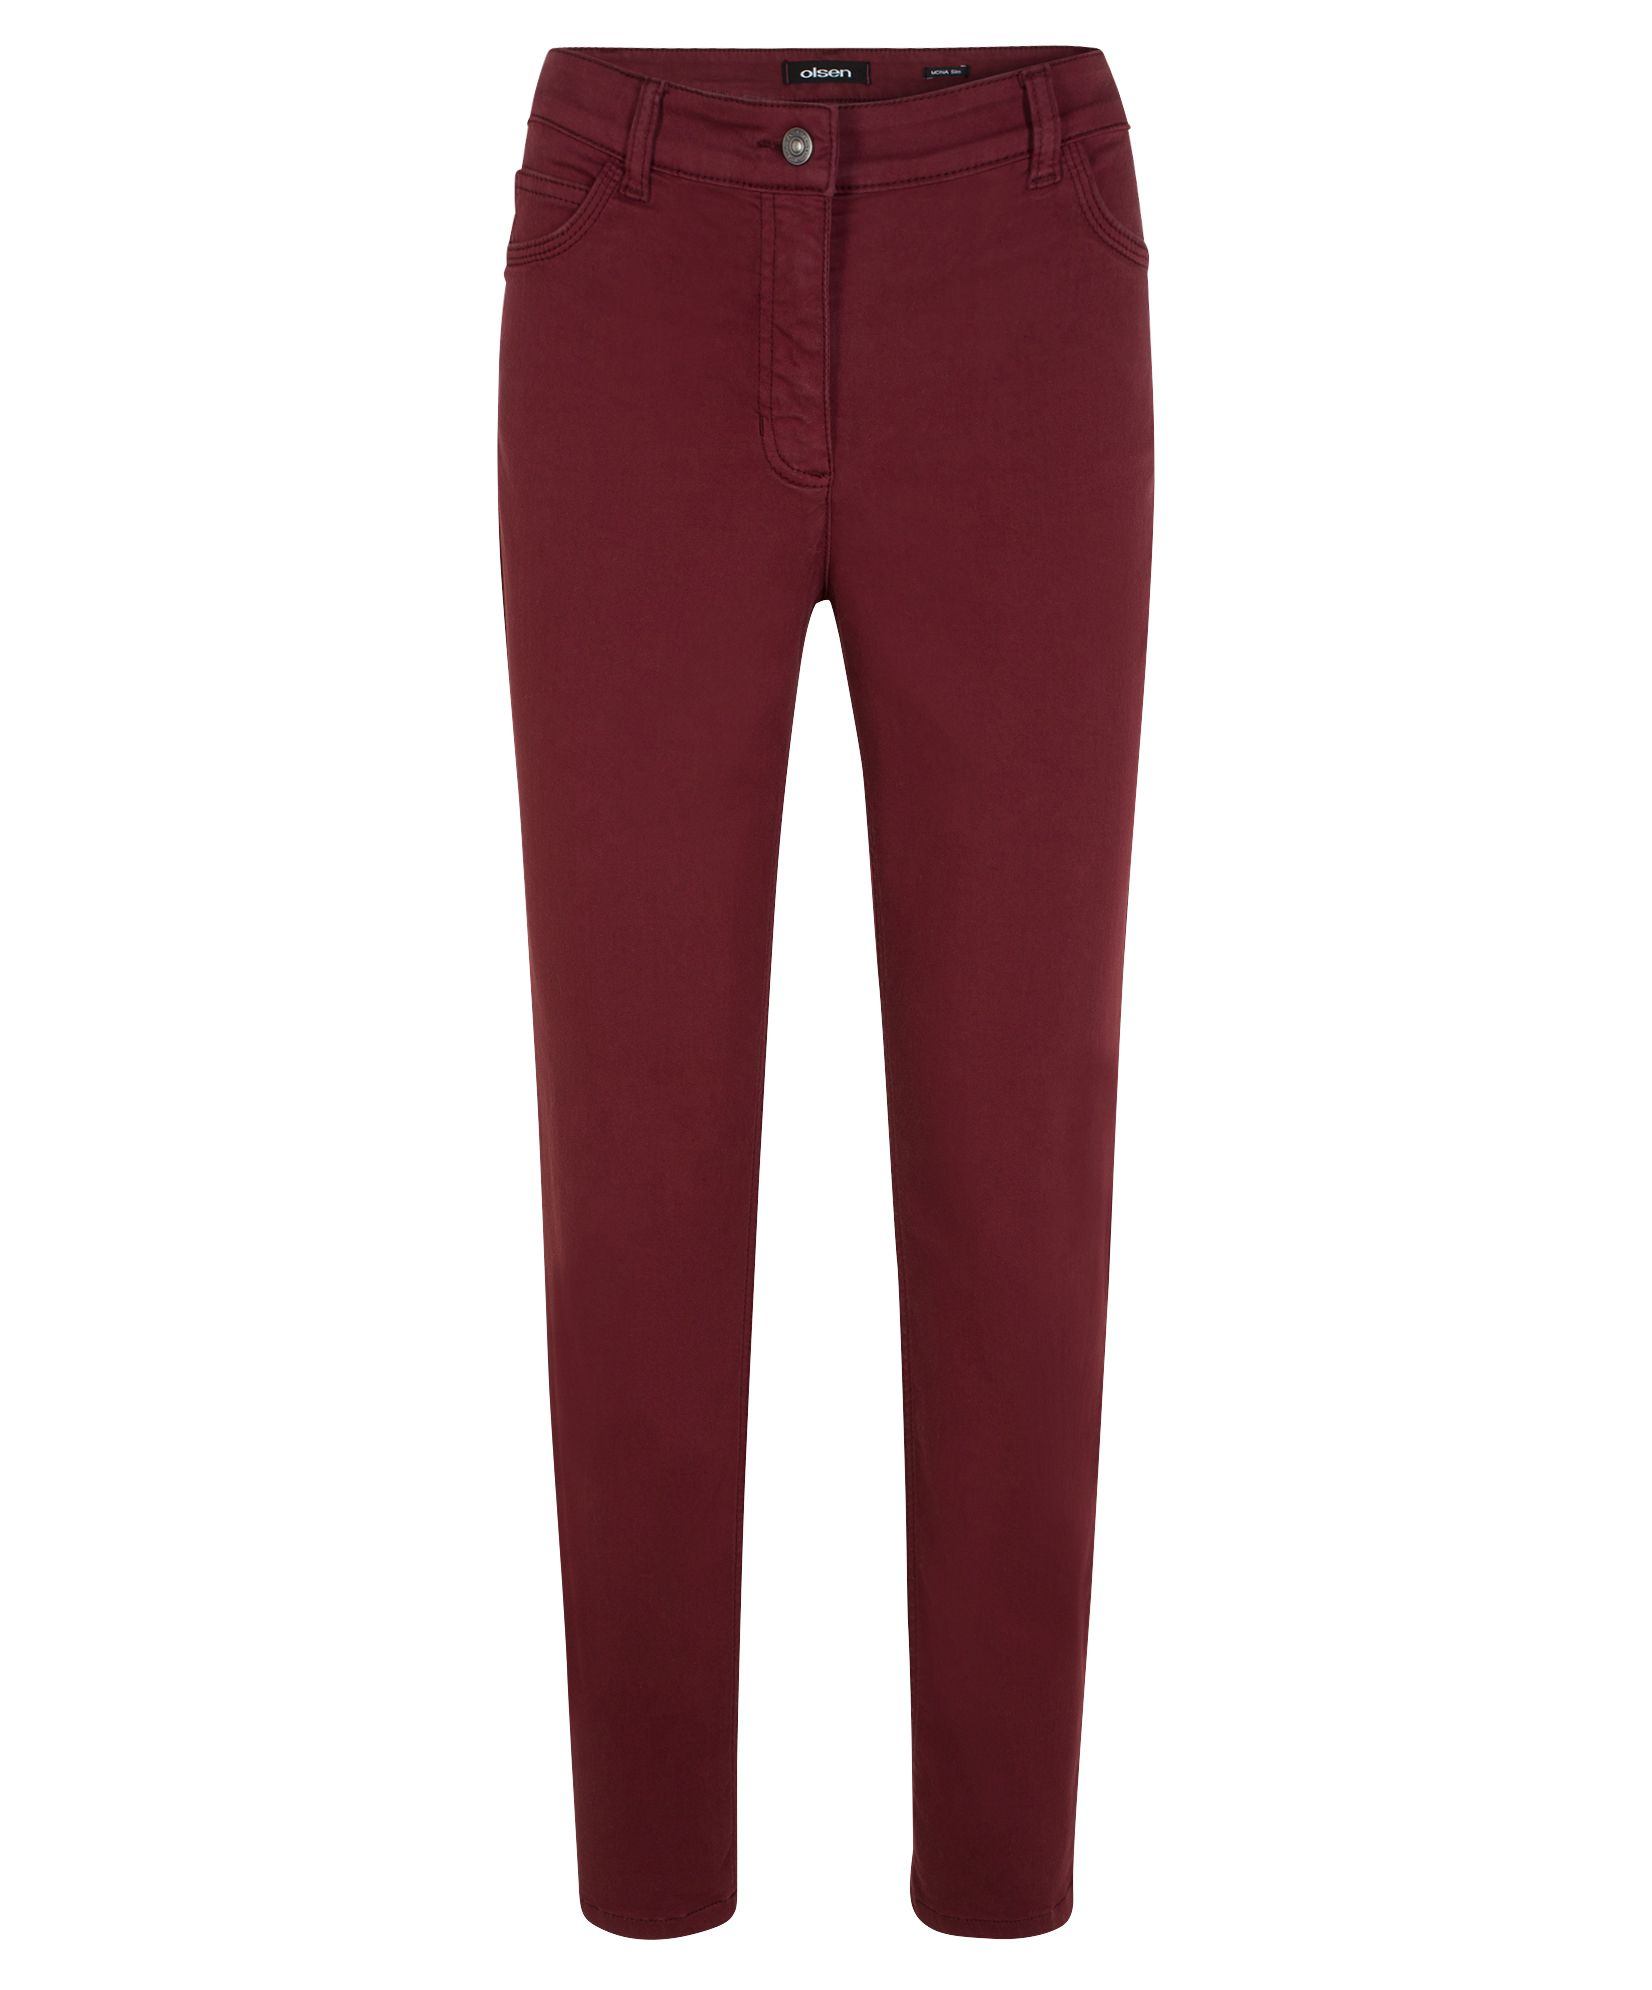 Olsen Trousers Casual Long, Red